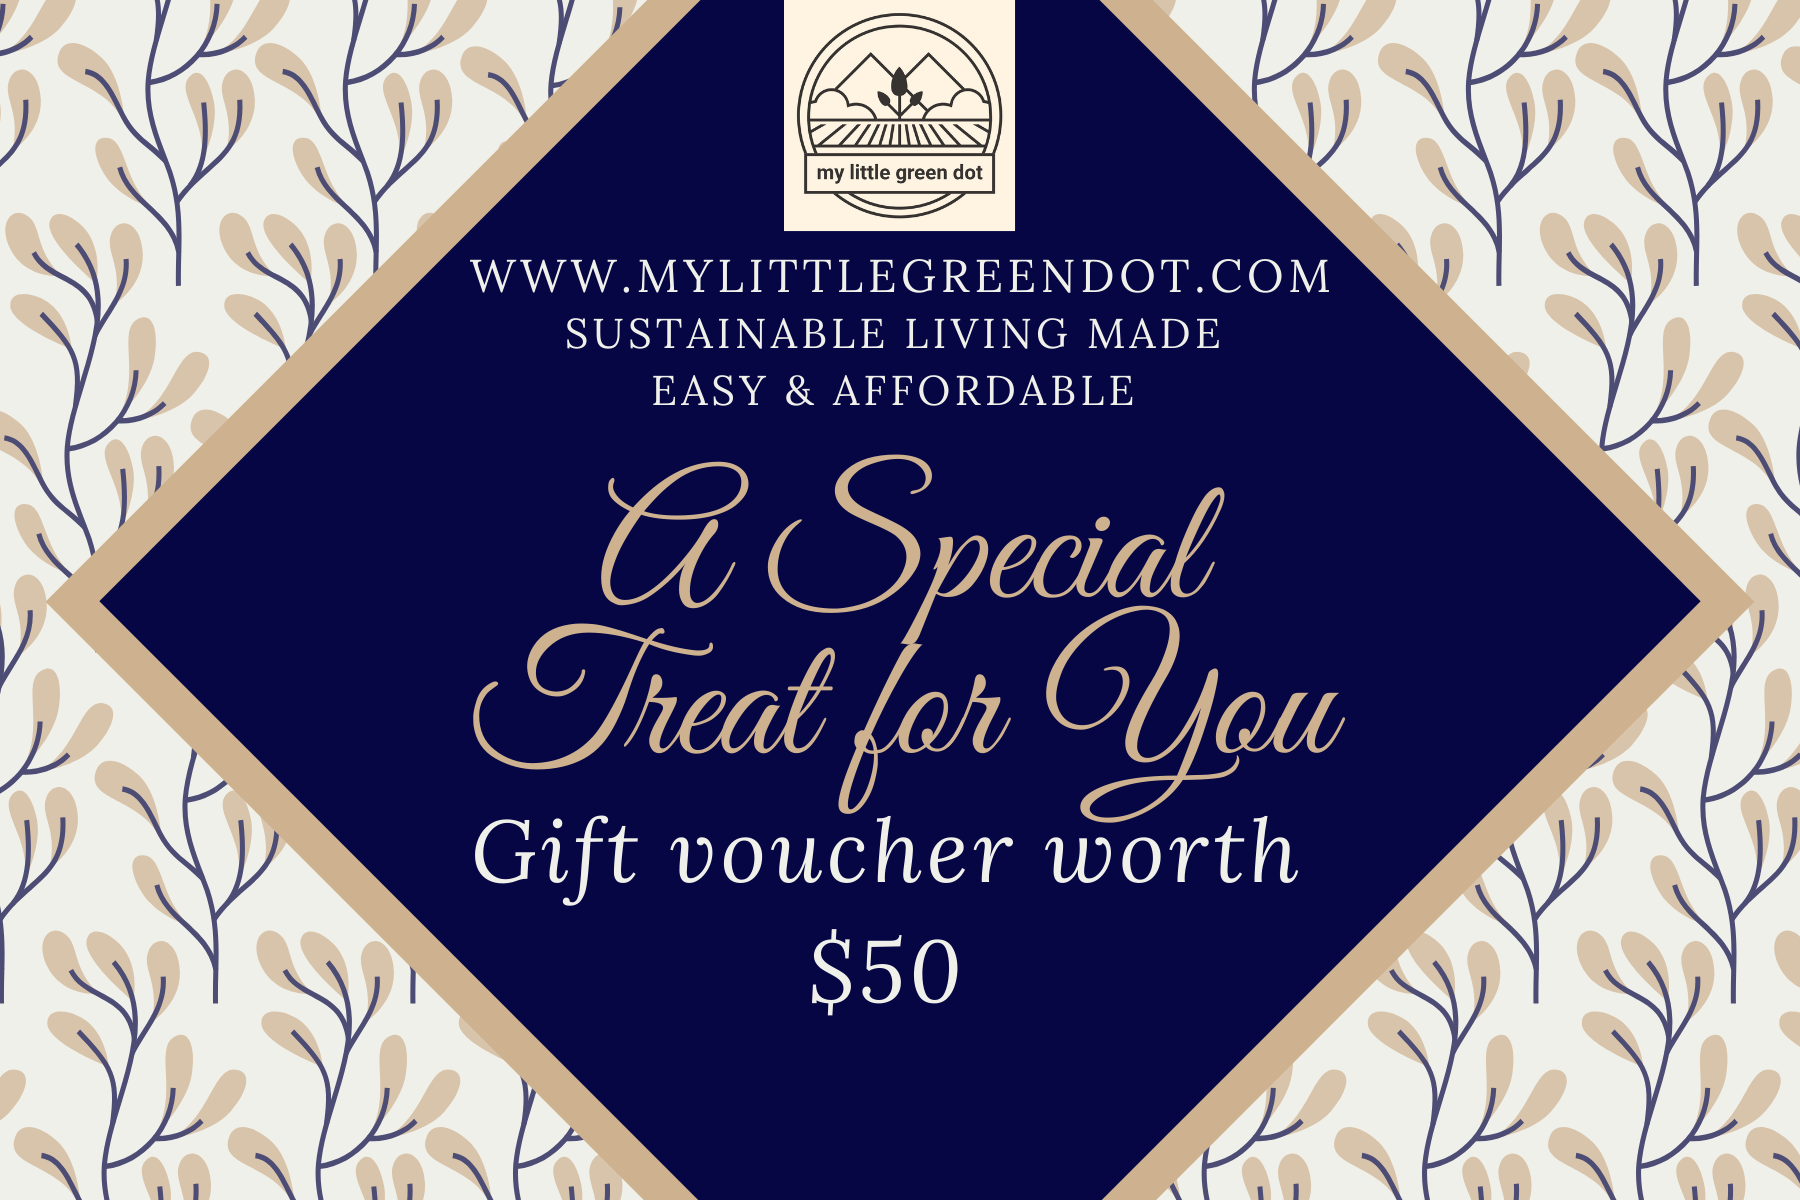 Gift Voucher worth $50